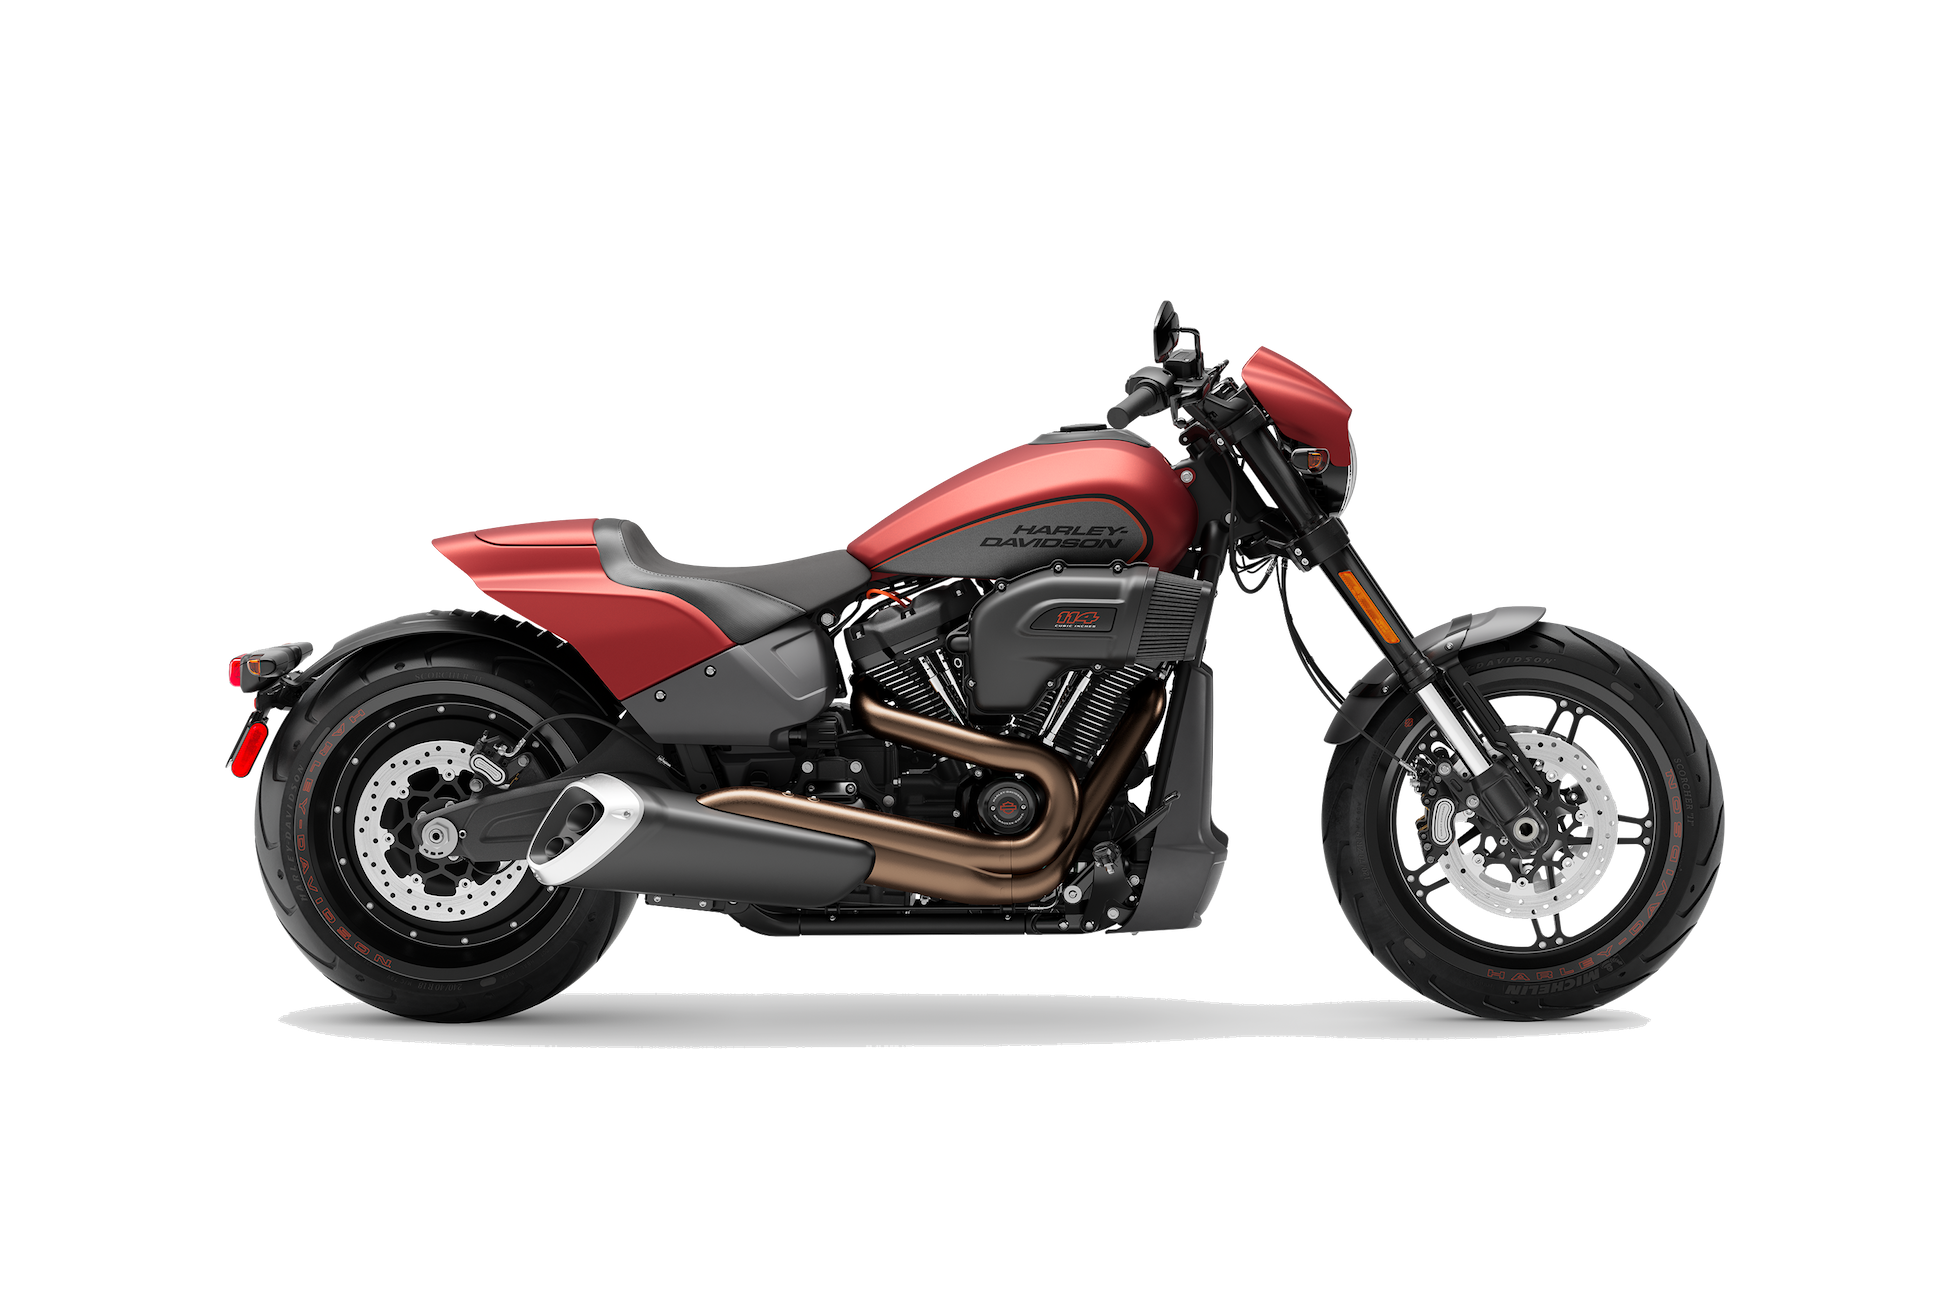 2019 H-D® FXDR™ 114 in Wicked Red Denim